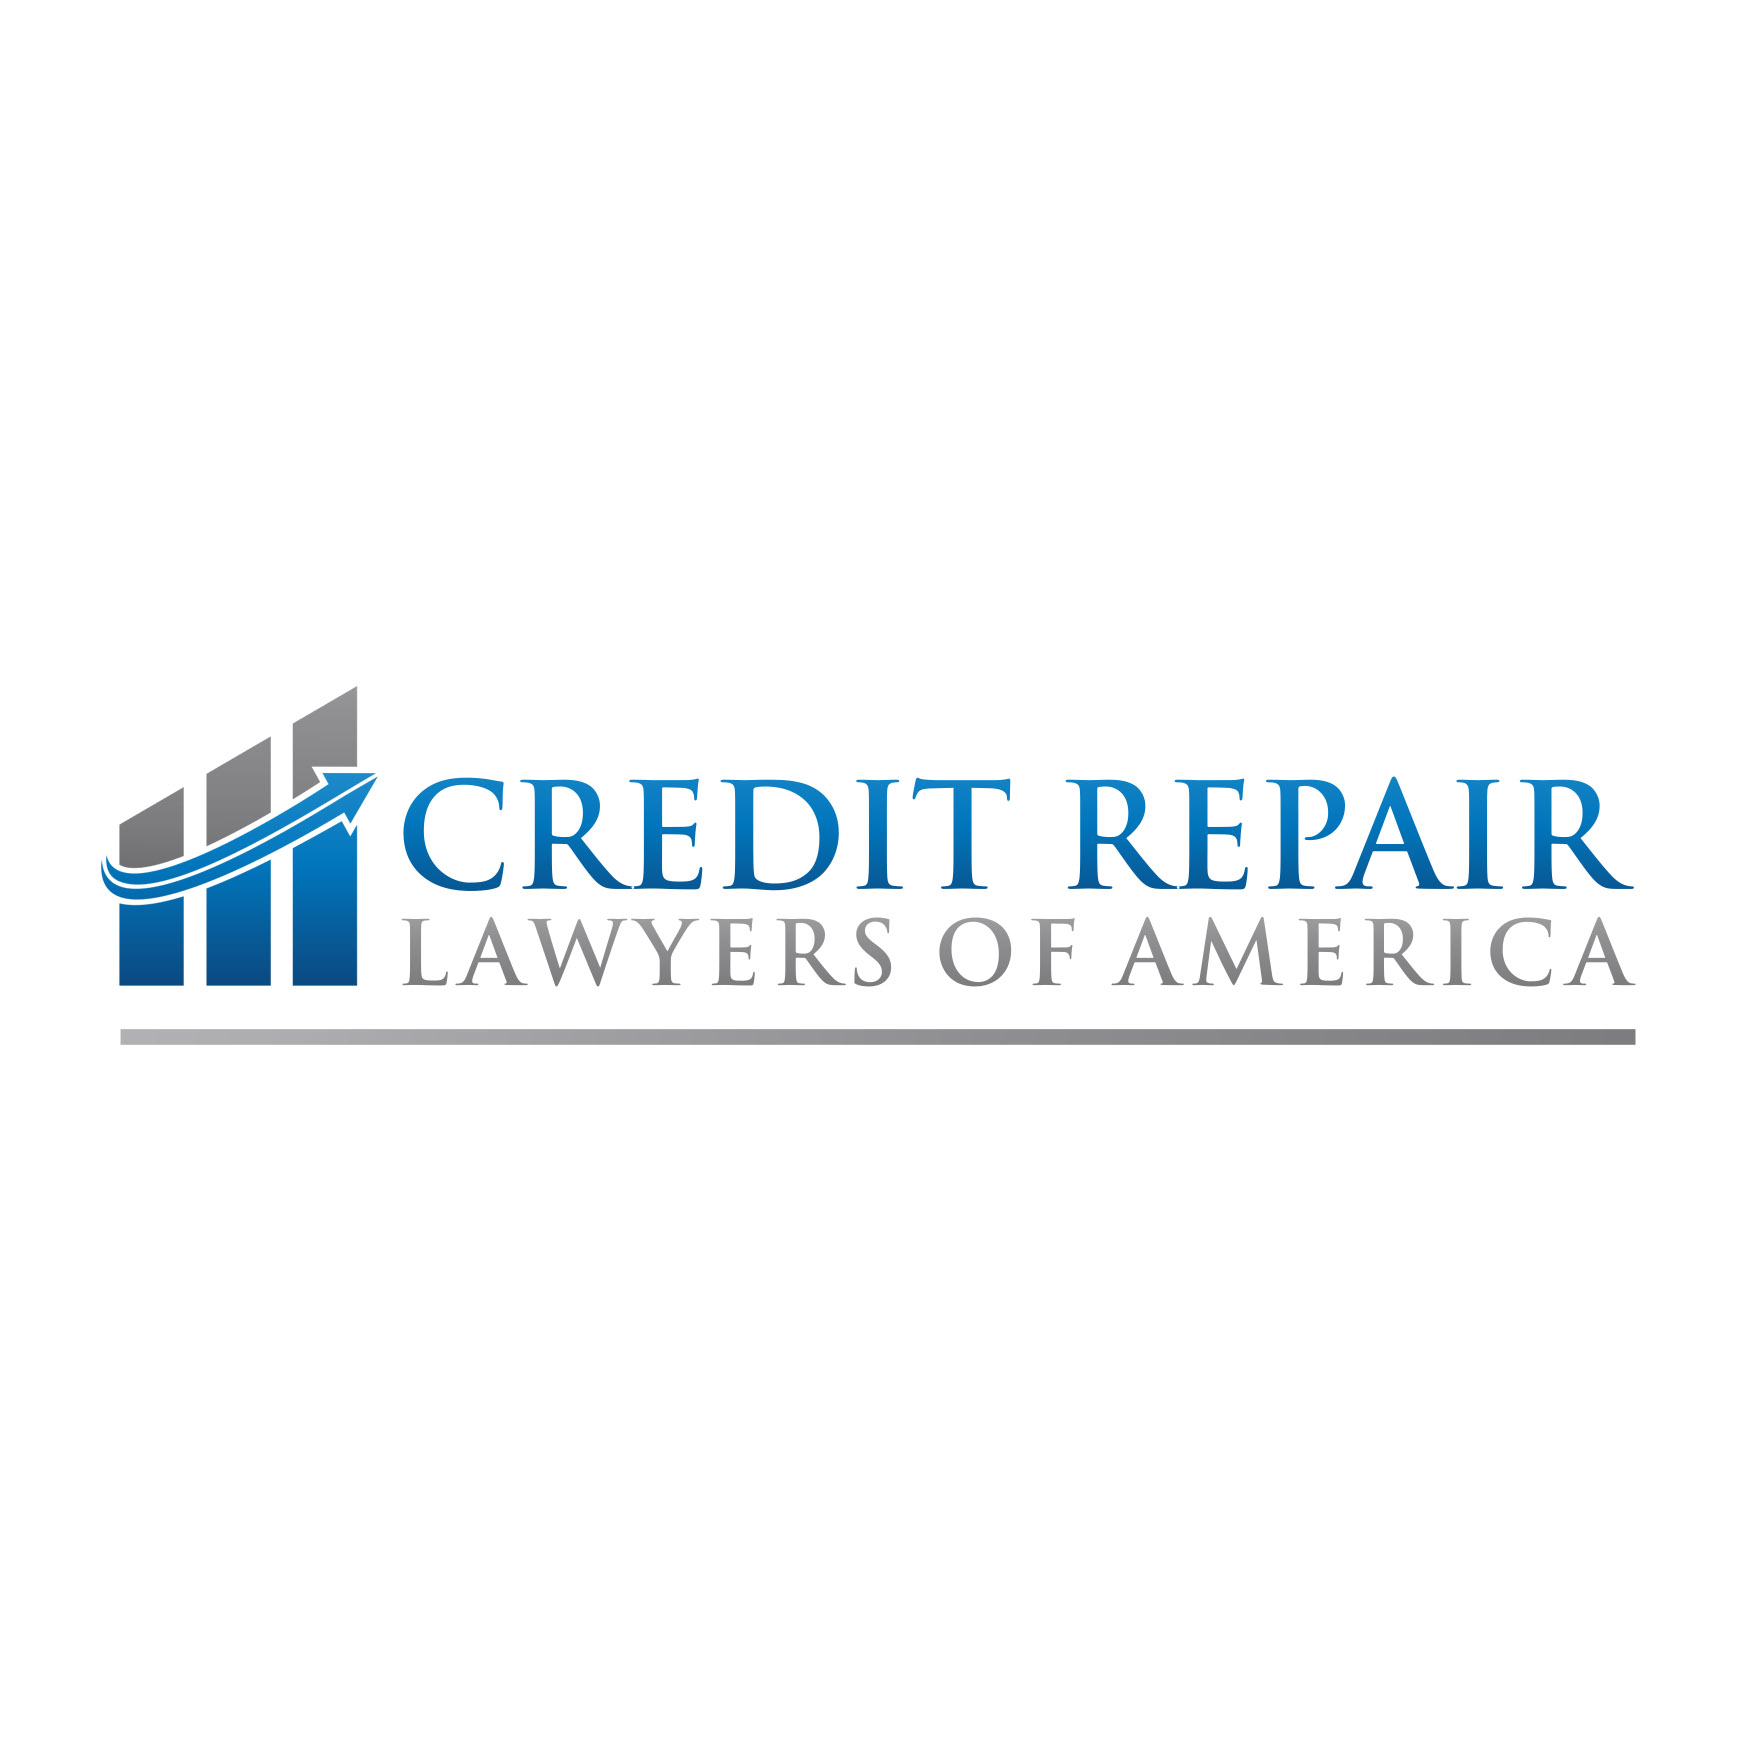 Credit Repair Lawyers of America Profile Picture